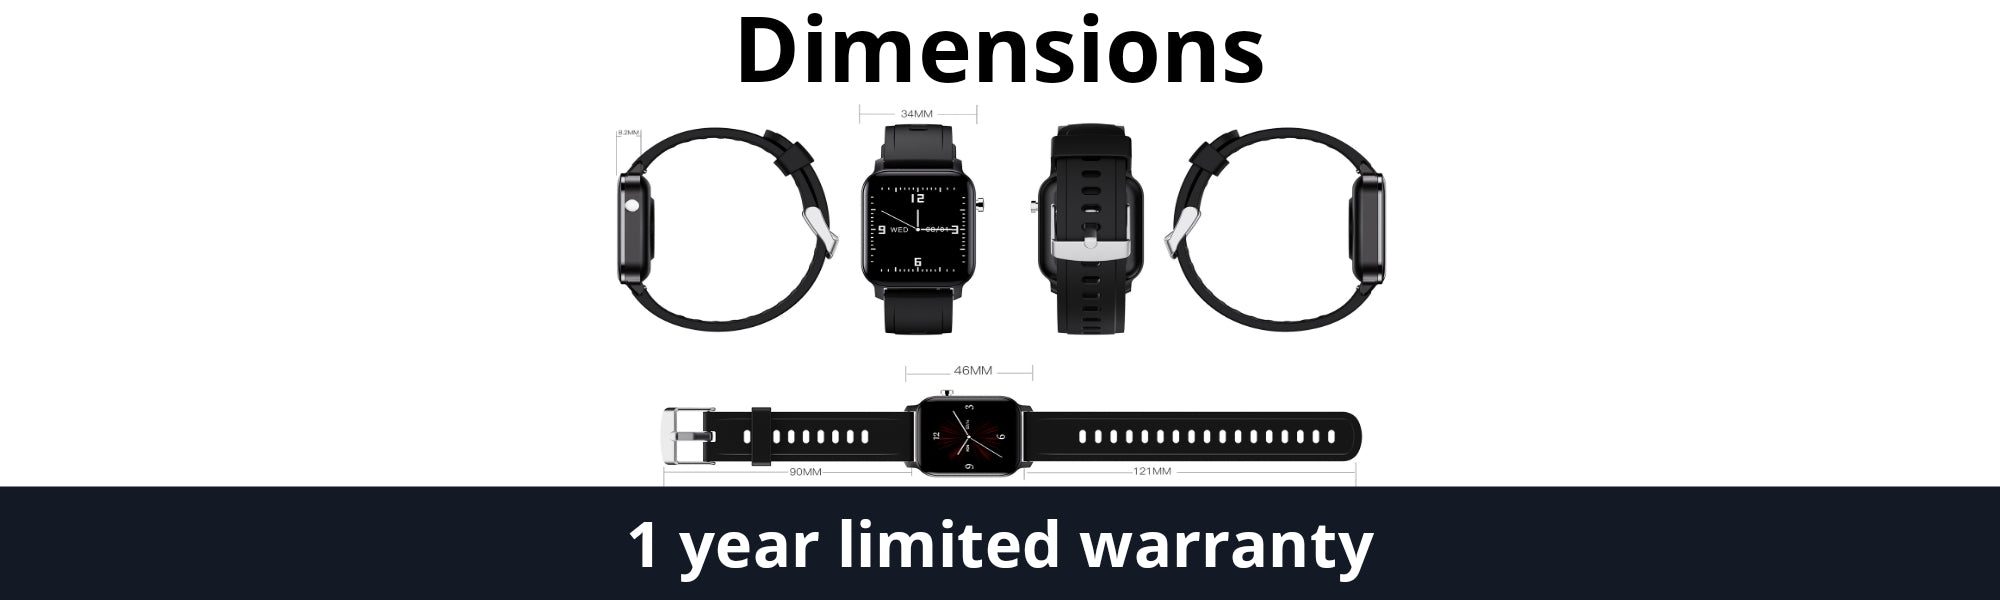 Vikyuvi Vikfit Elite Smartwatch dimensions and 1 year warranty